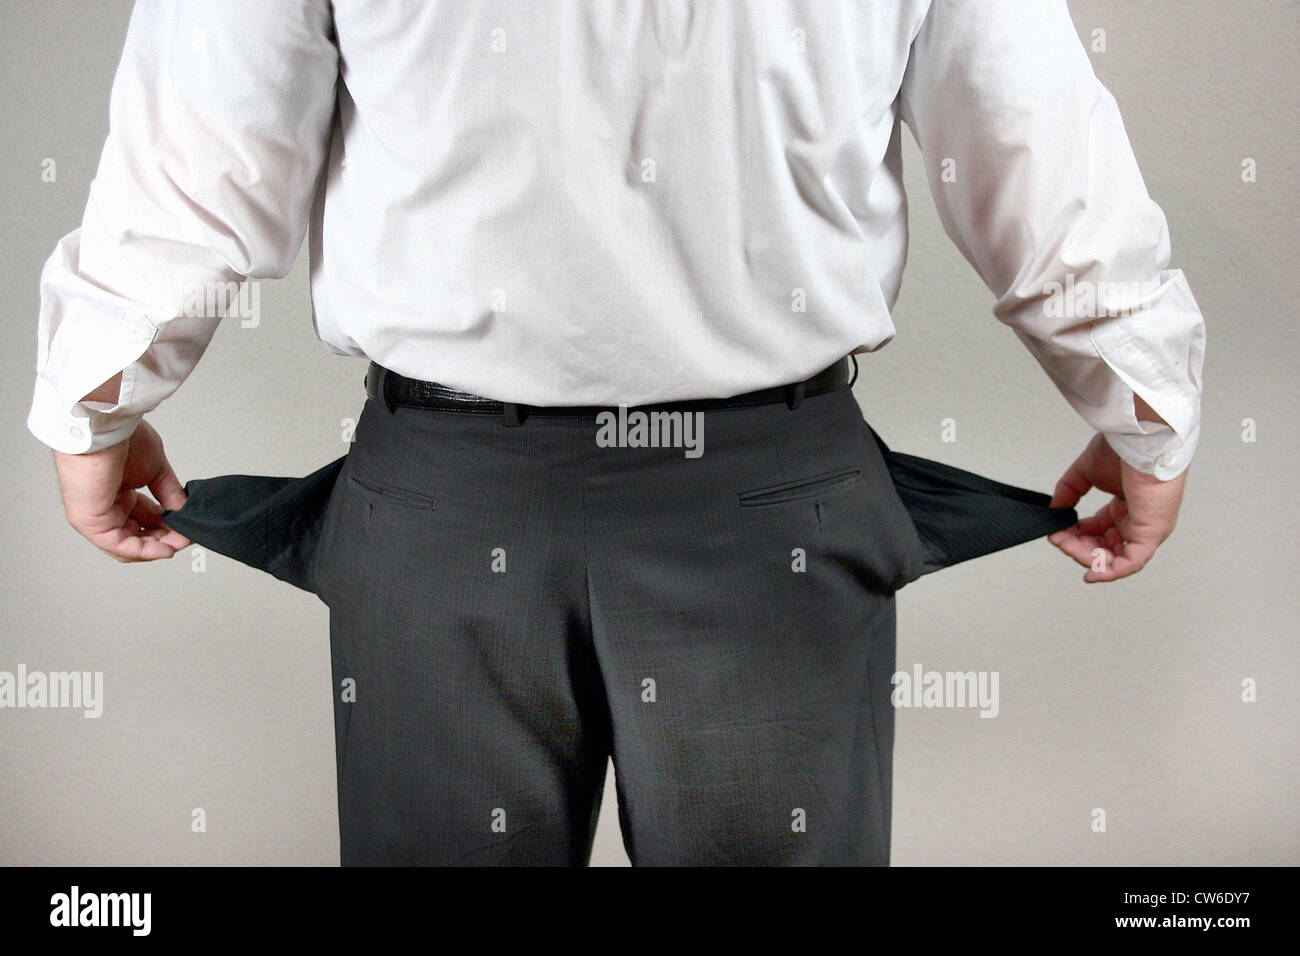 Empty trouser pockets - Stock Image